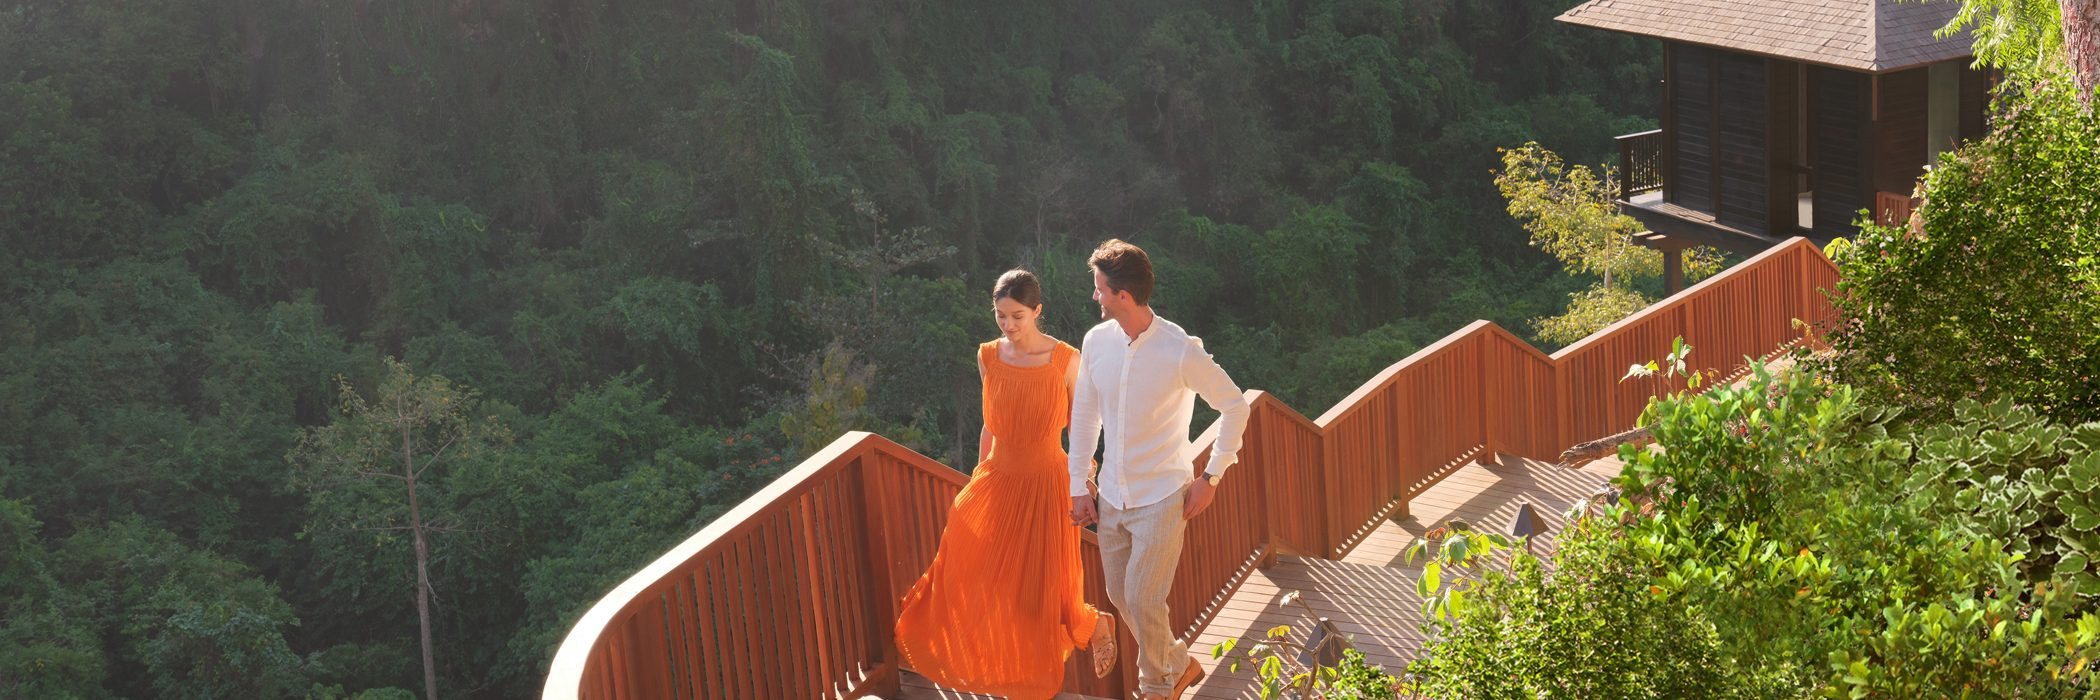 Raffles Bali - Transcend to an Oasis of Emotional Wellbeing at The Sanctuary